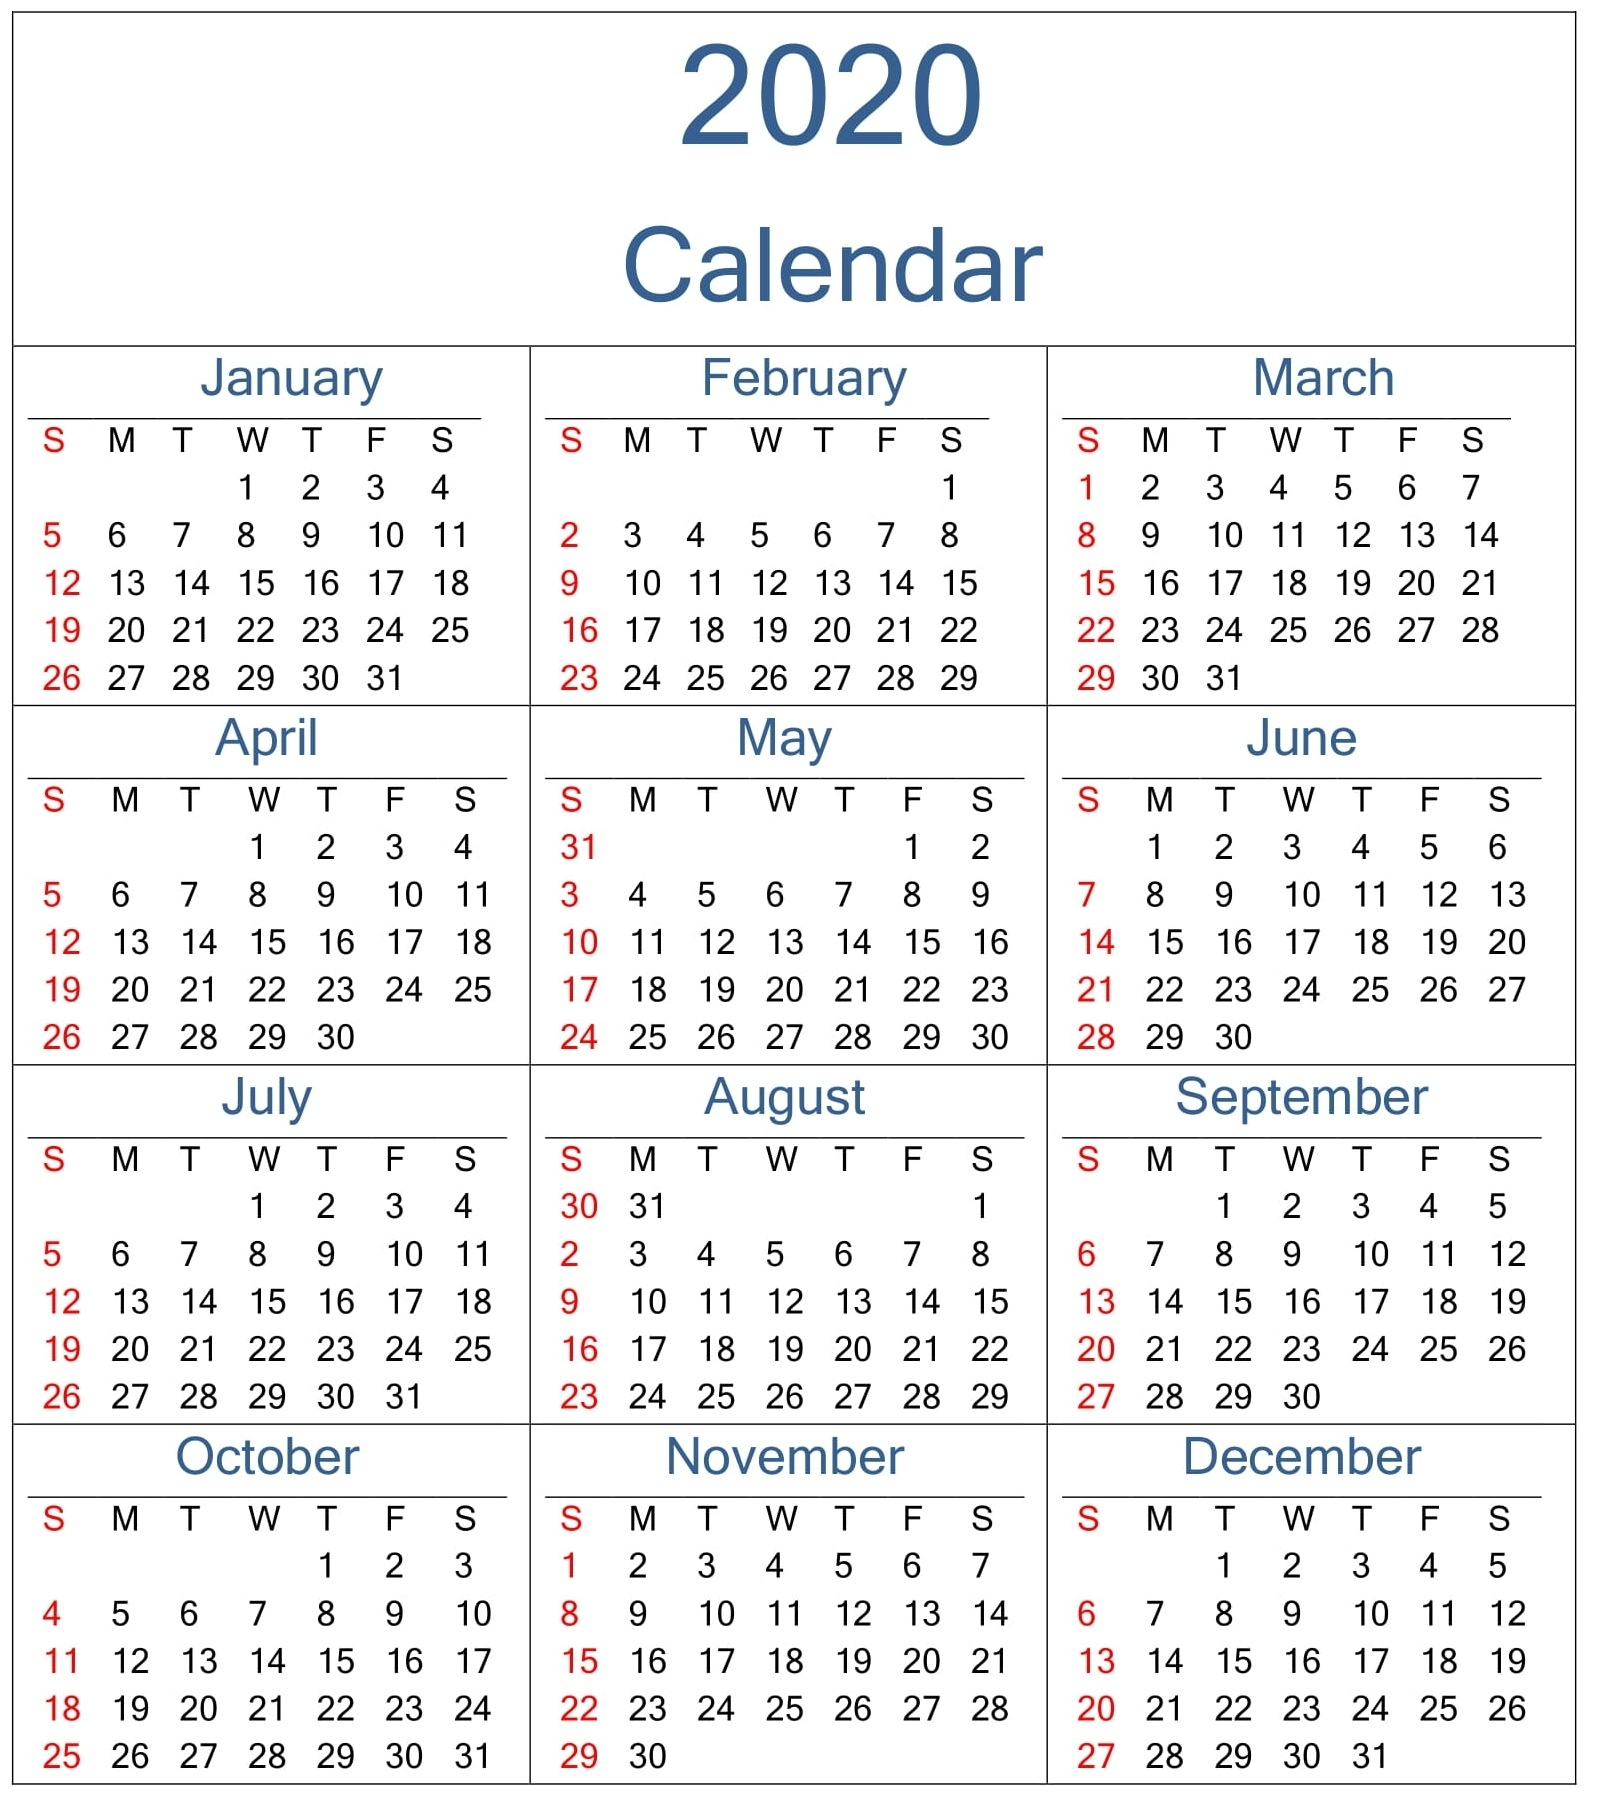 Yearly 2020 Calendar Excel Template - Latest Printable pertaining to 2020 Calendar Weeks Numbered Excel